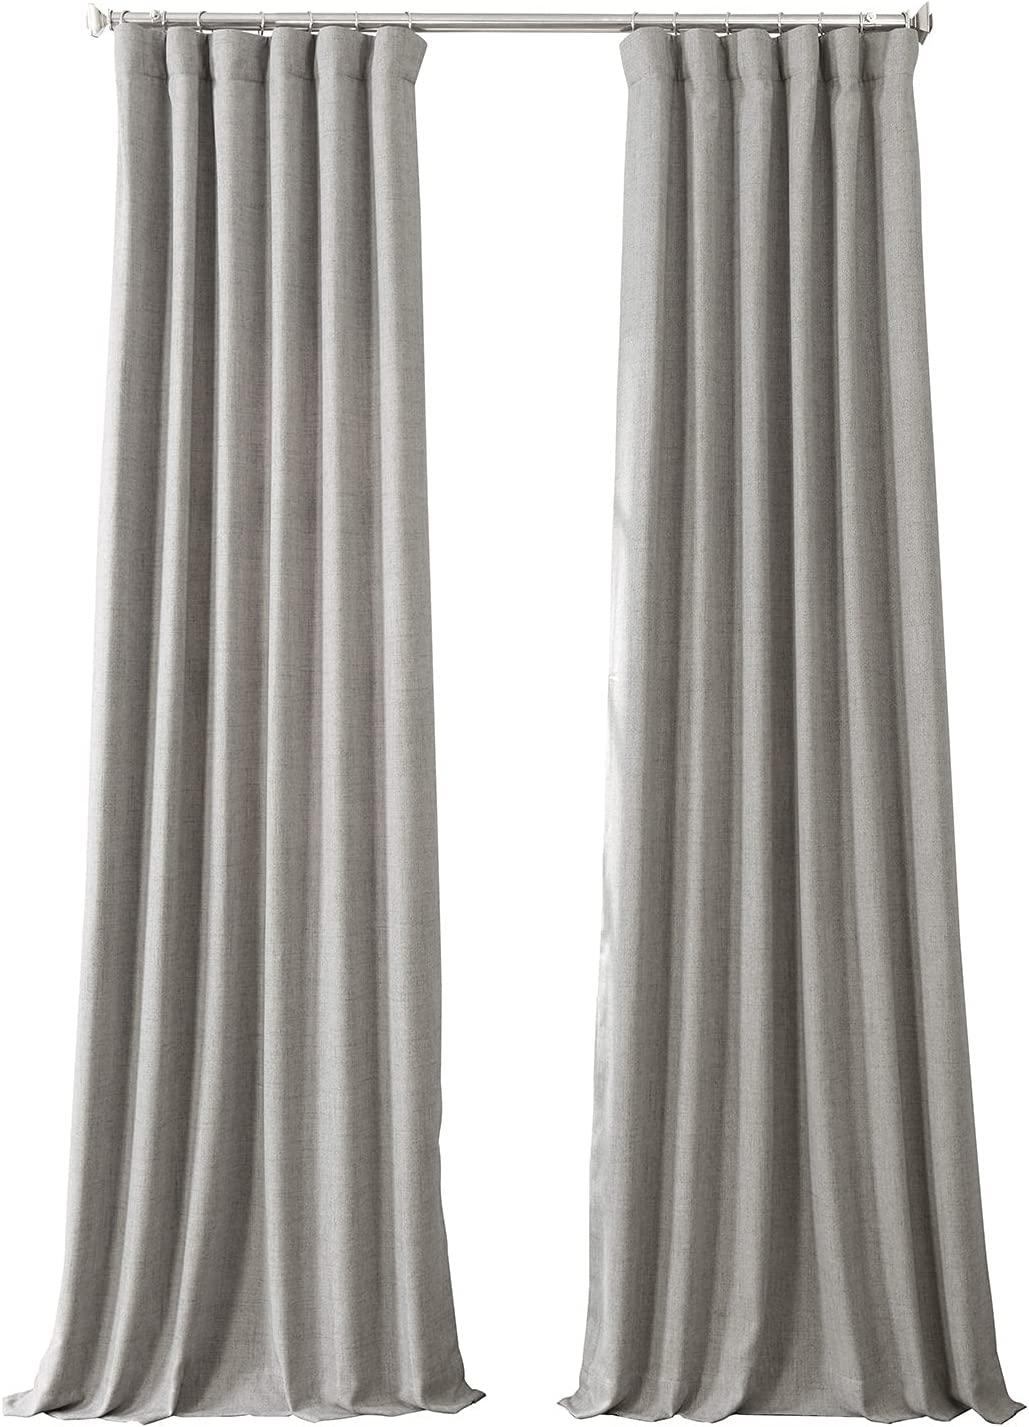 HPD Half Outlet ☆ Free Shipping Price Drapes It is very popular FHWL-190709-96 Heat Room Thermal Darkening